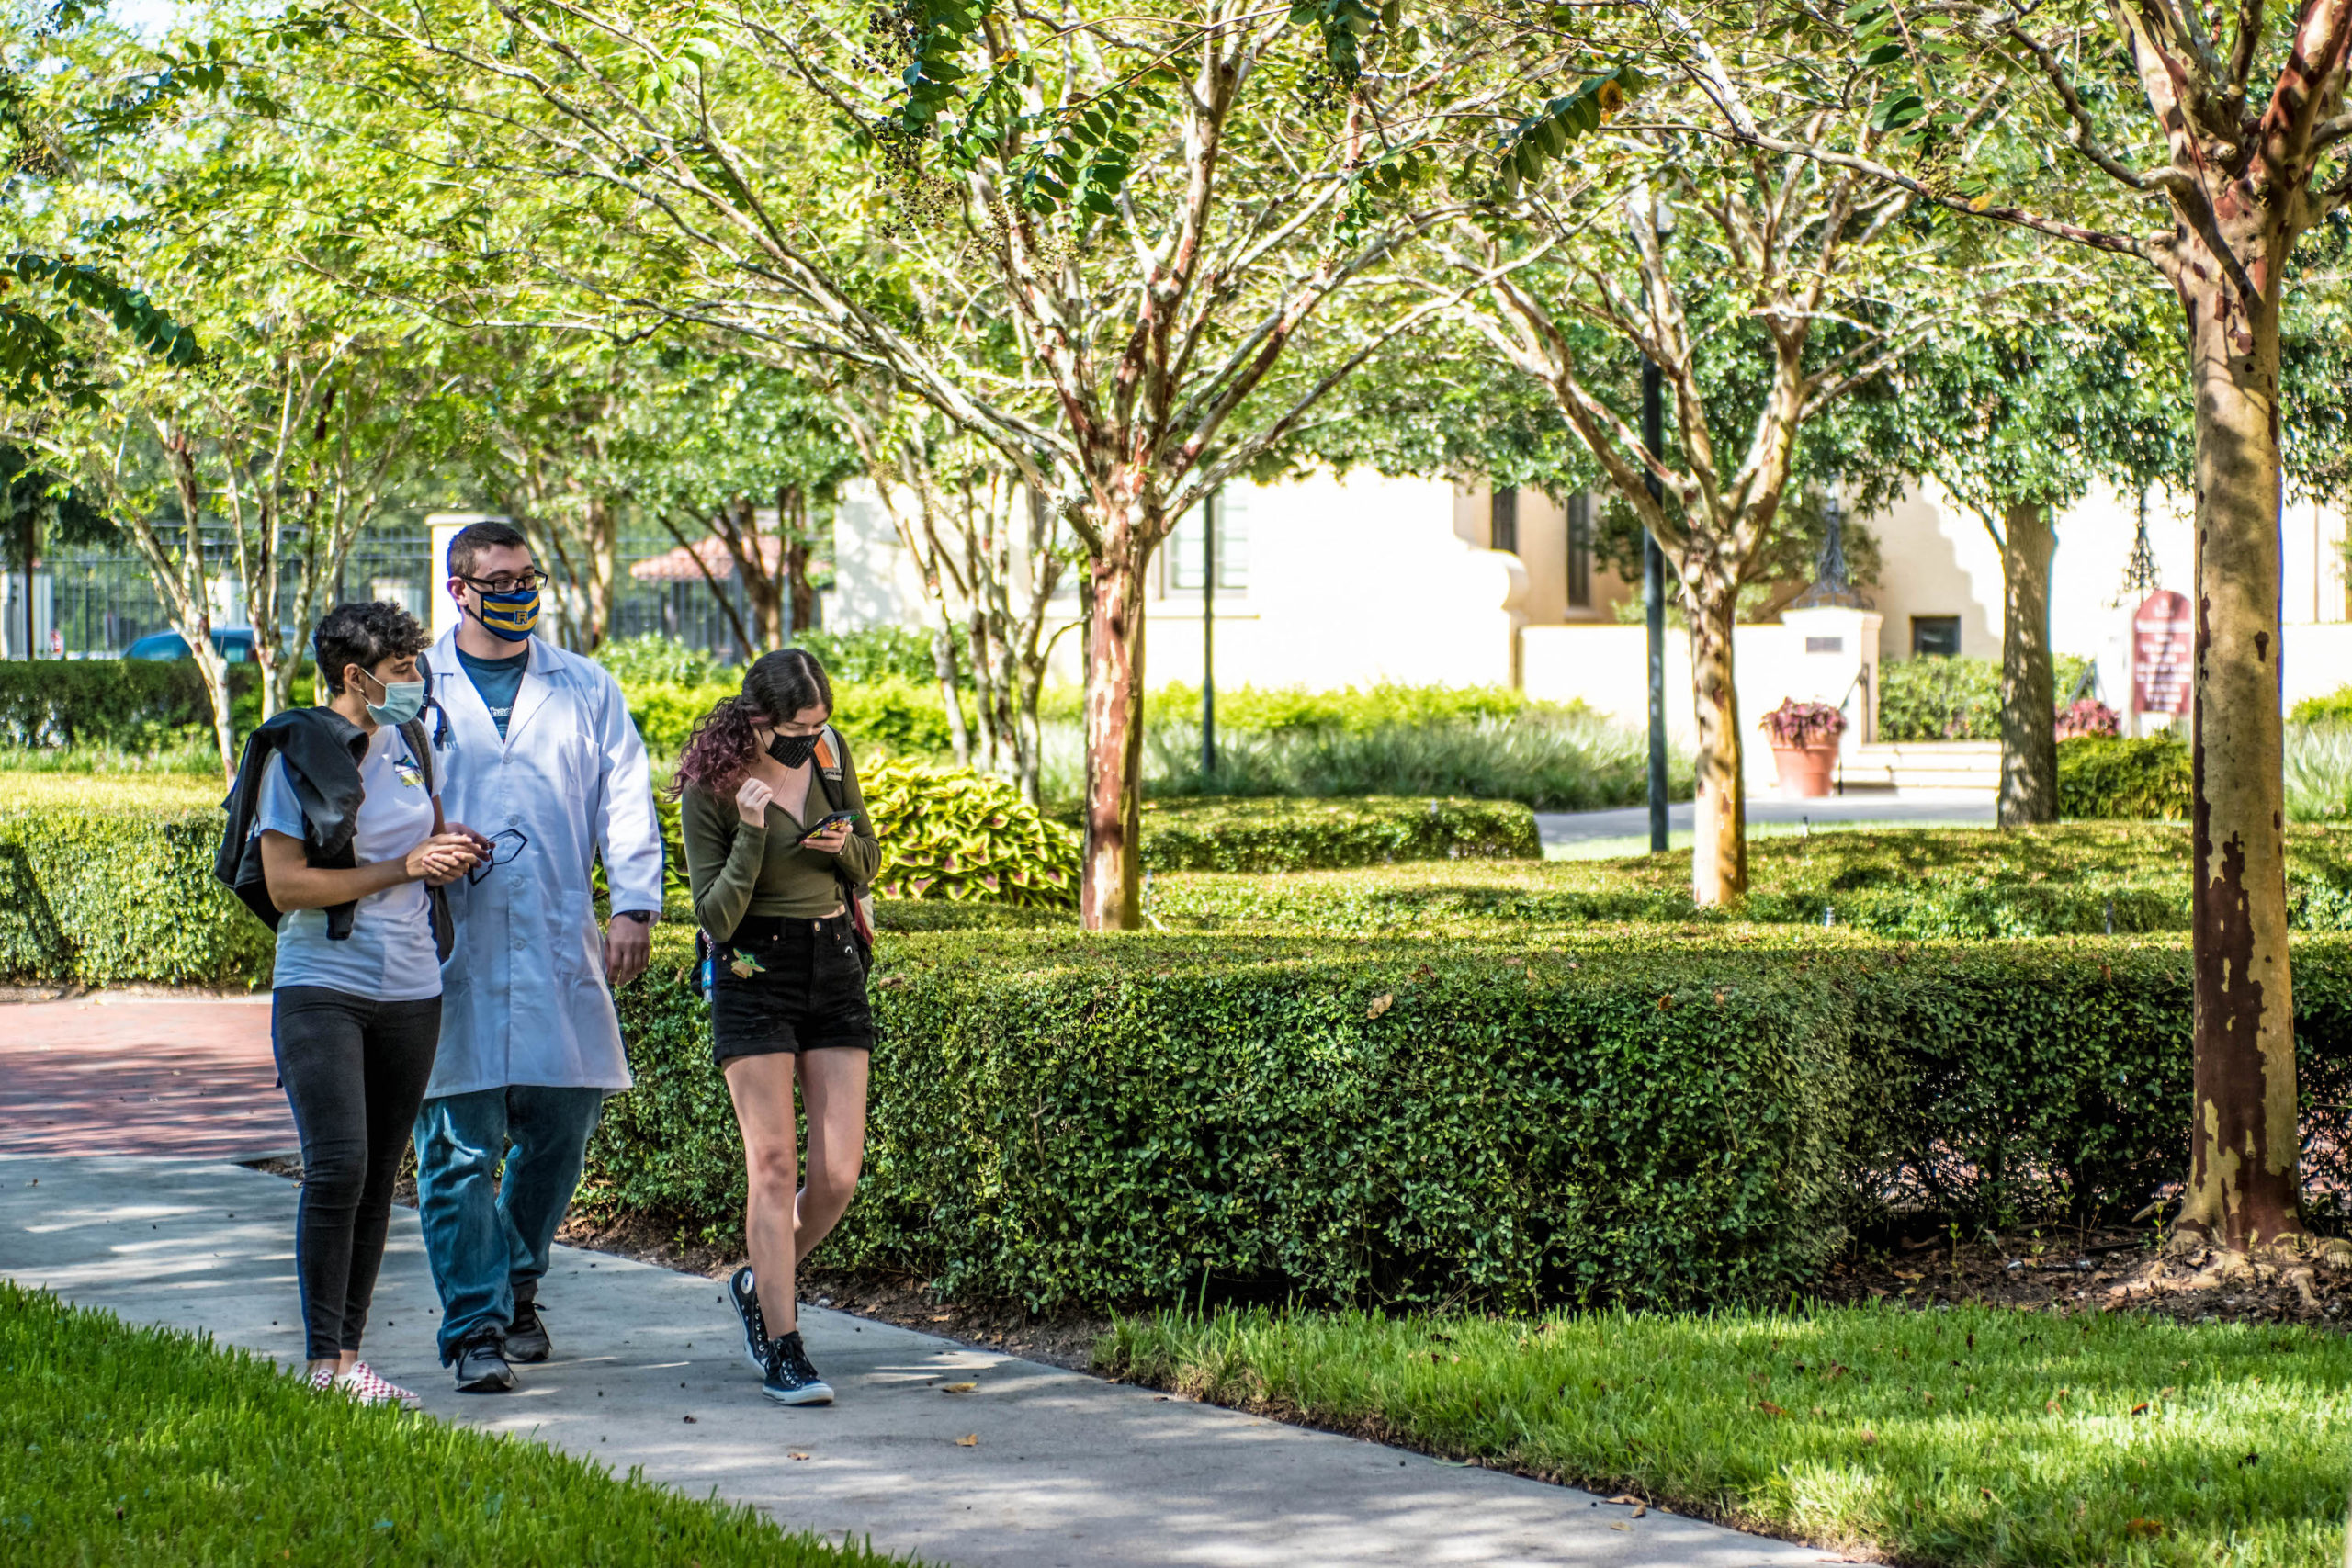 Students at Rollins College walk outdoors with face masks on.